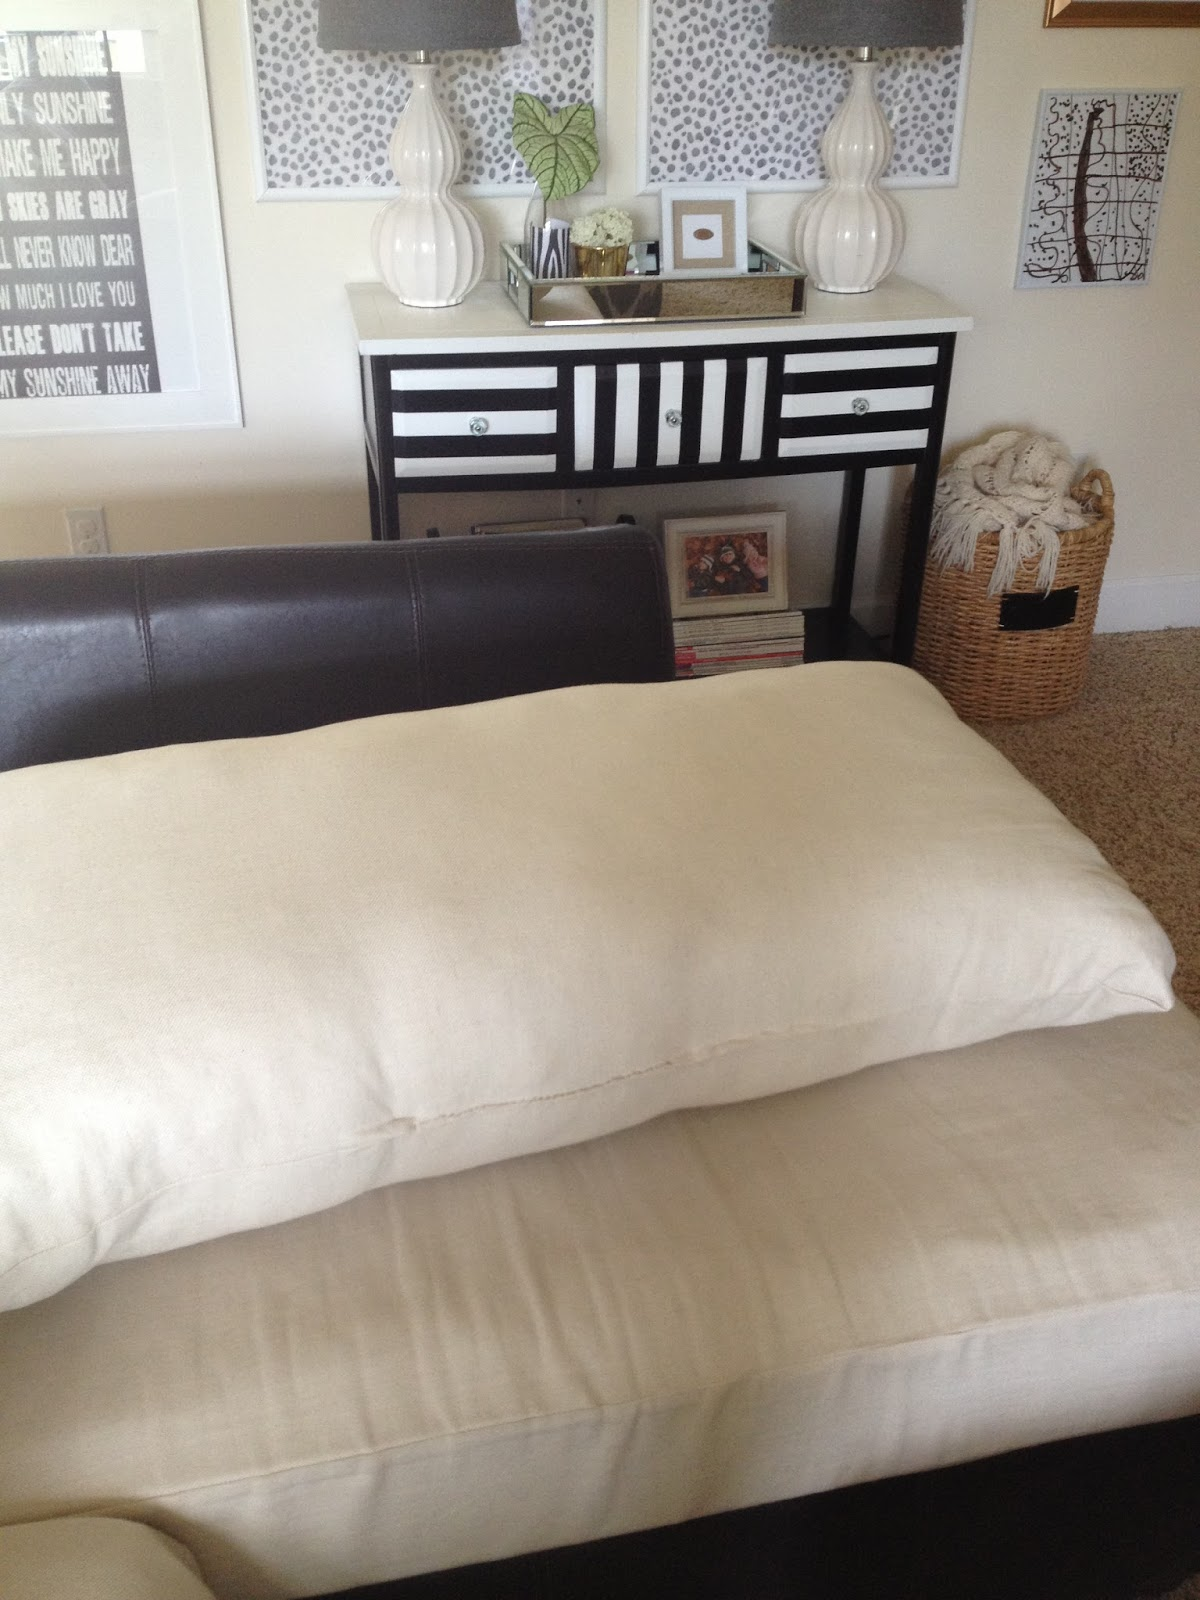 how to get pen out of fabric couch